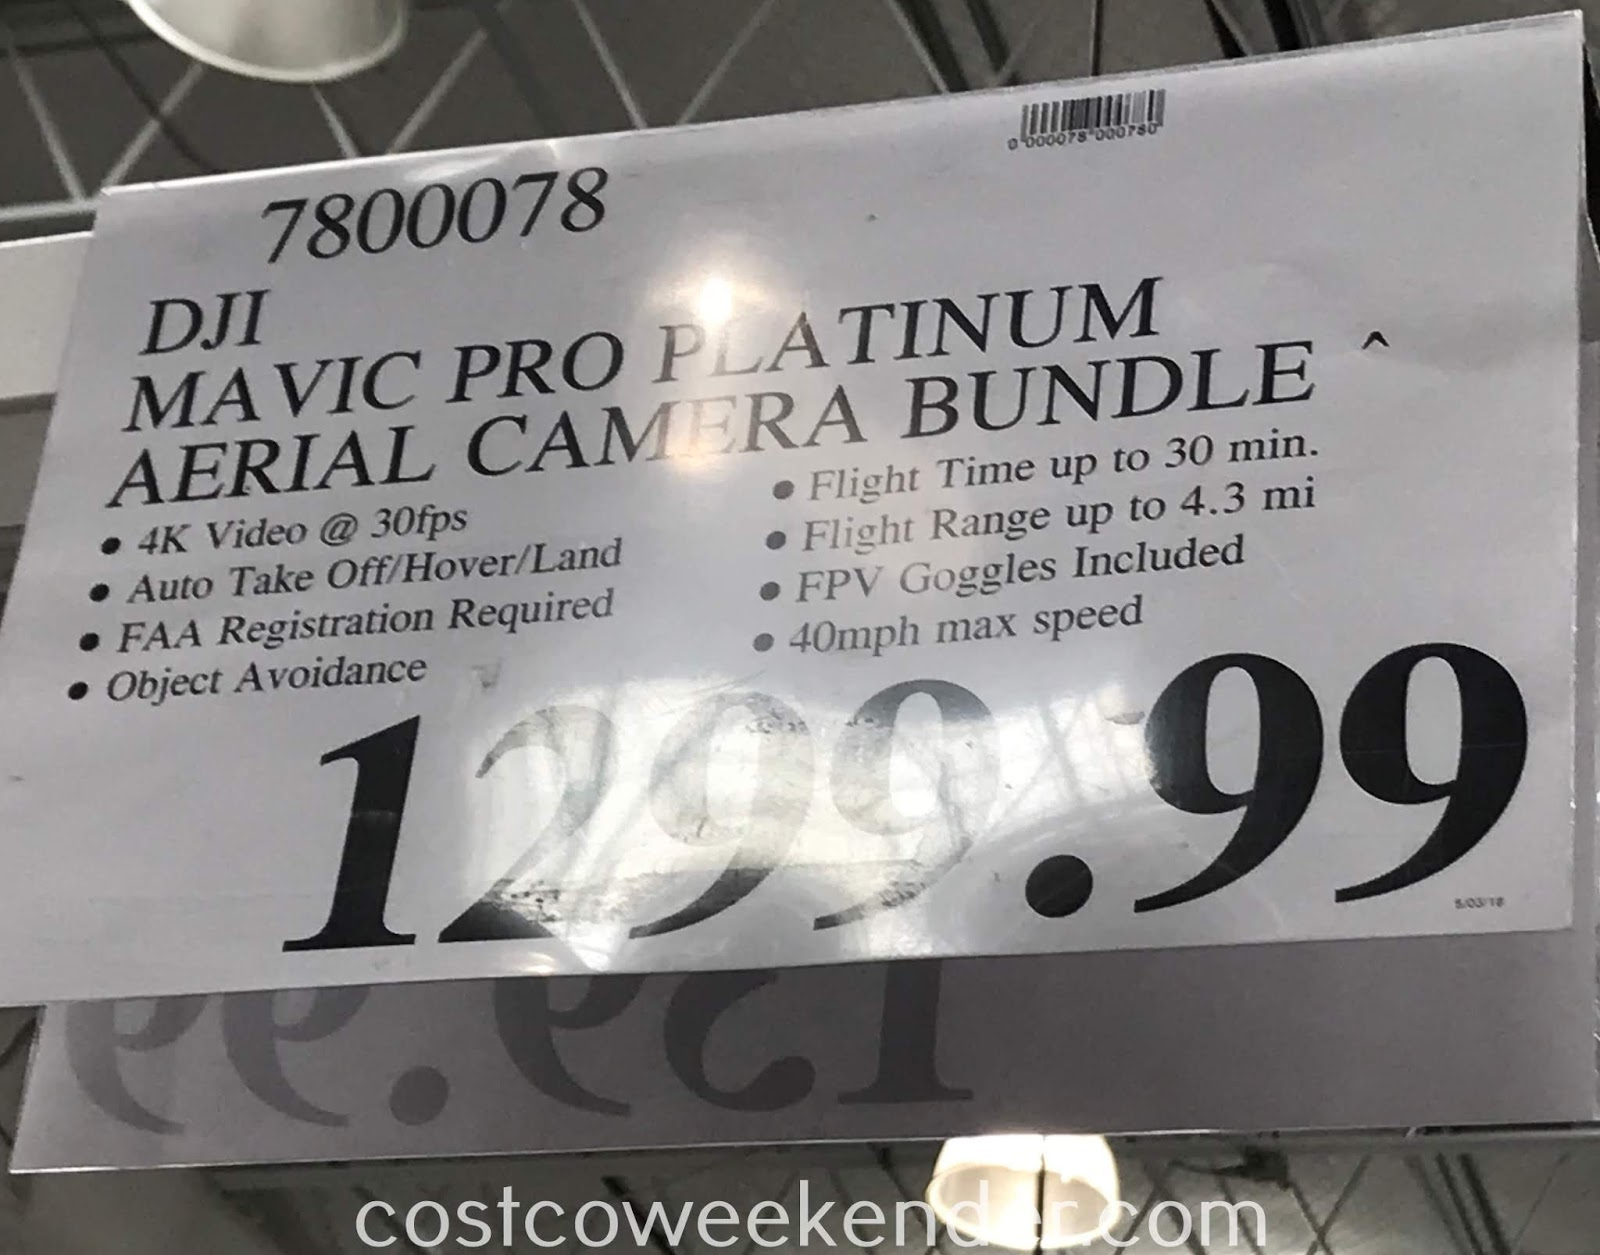 Deal for the DJI Mavic Pro Platinum Bundle at Costco